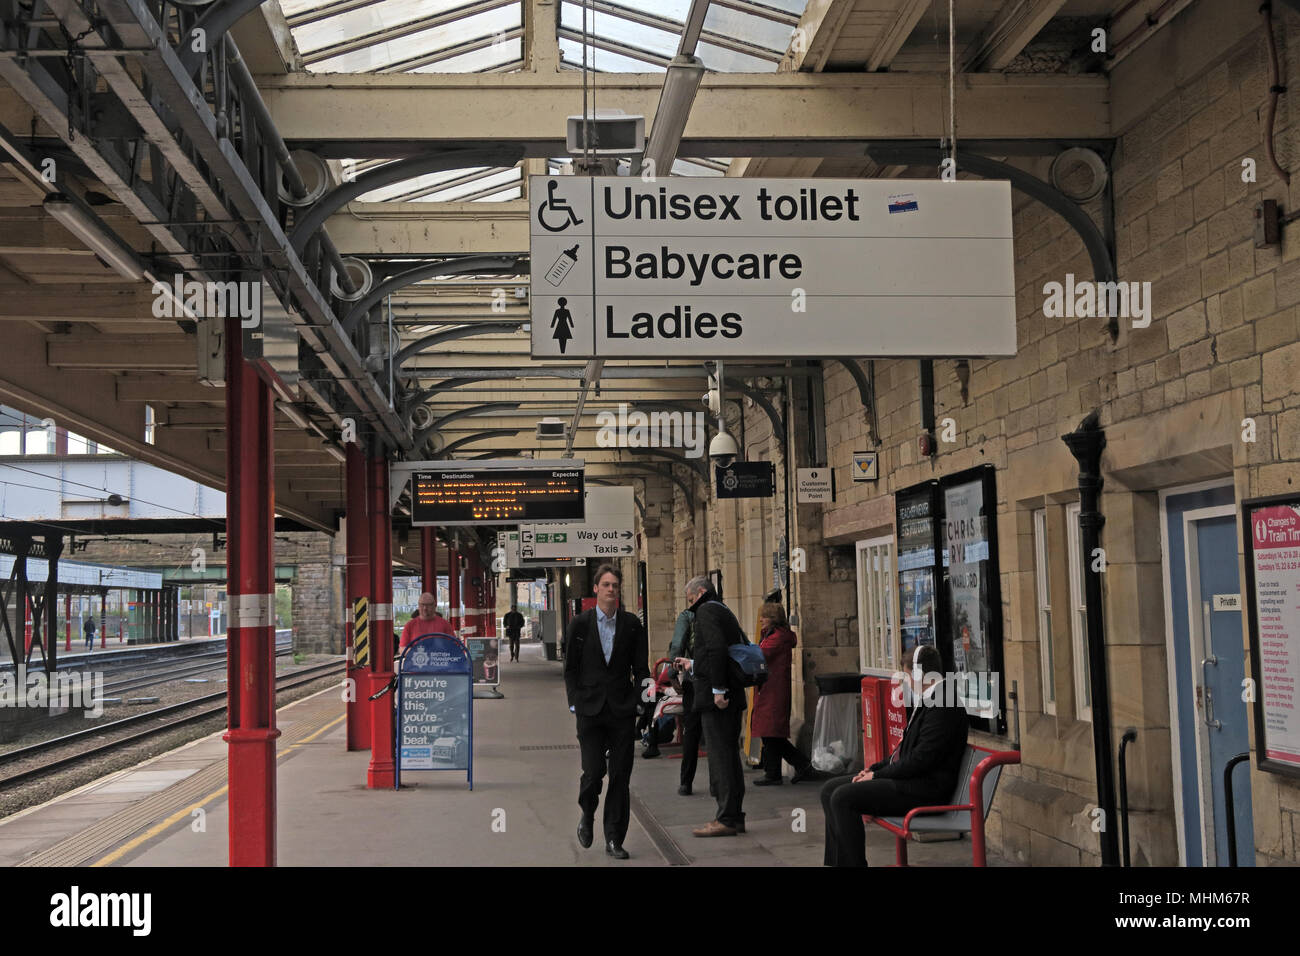 Lancaster Railway Station, Unisex Toilet,Babycare,Ladies facilities, Lancashire, England, UK - Stock Image